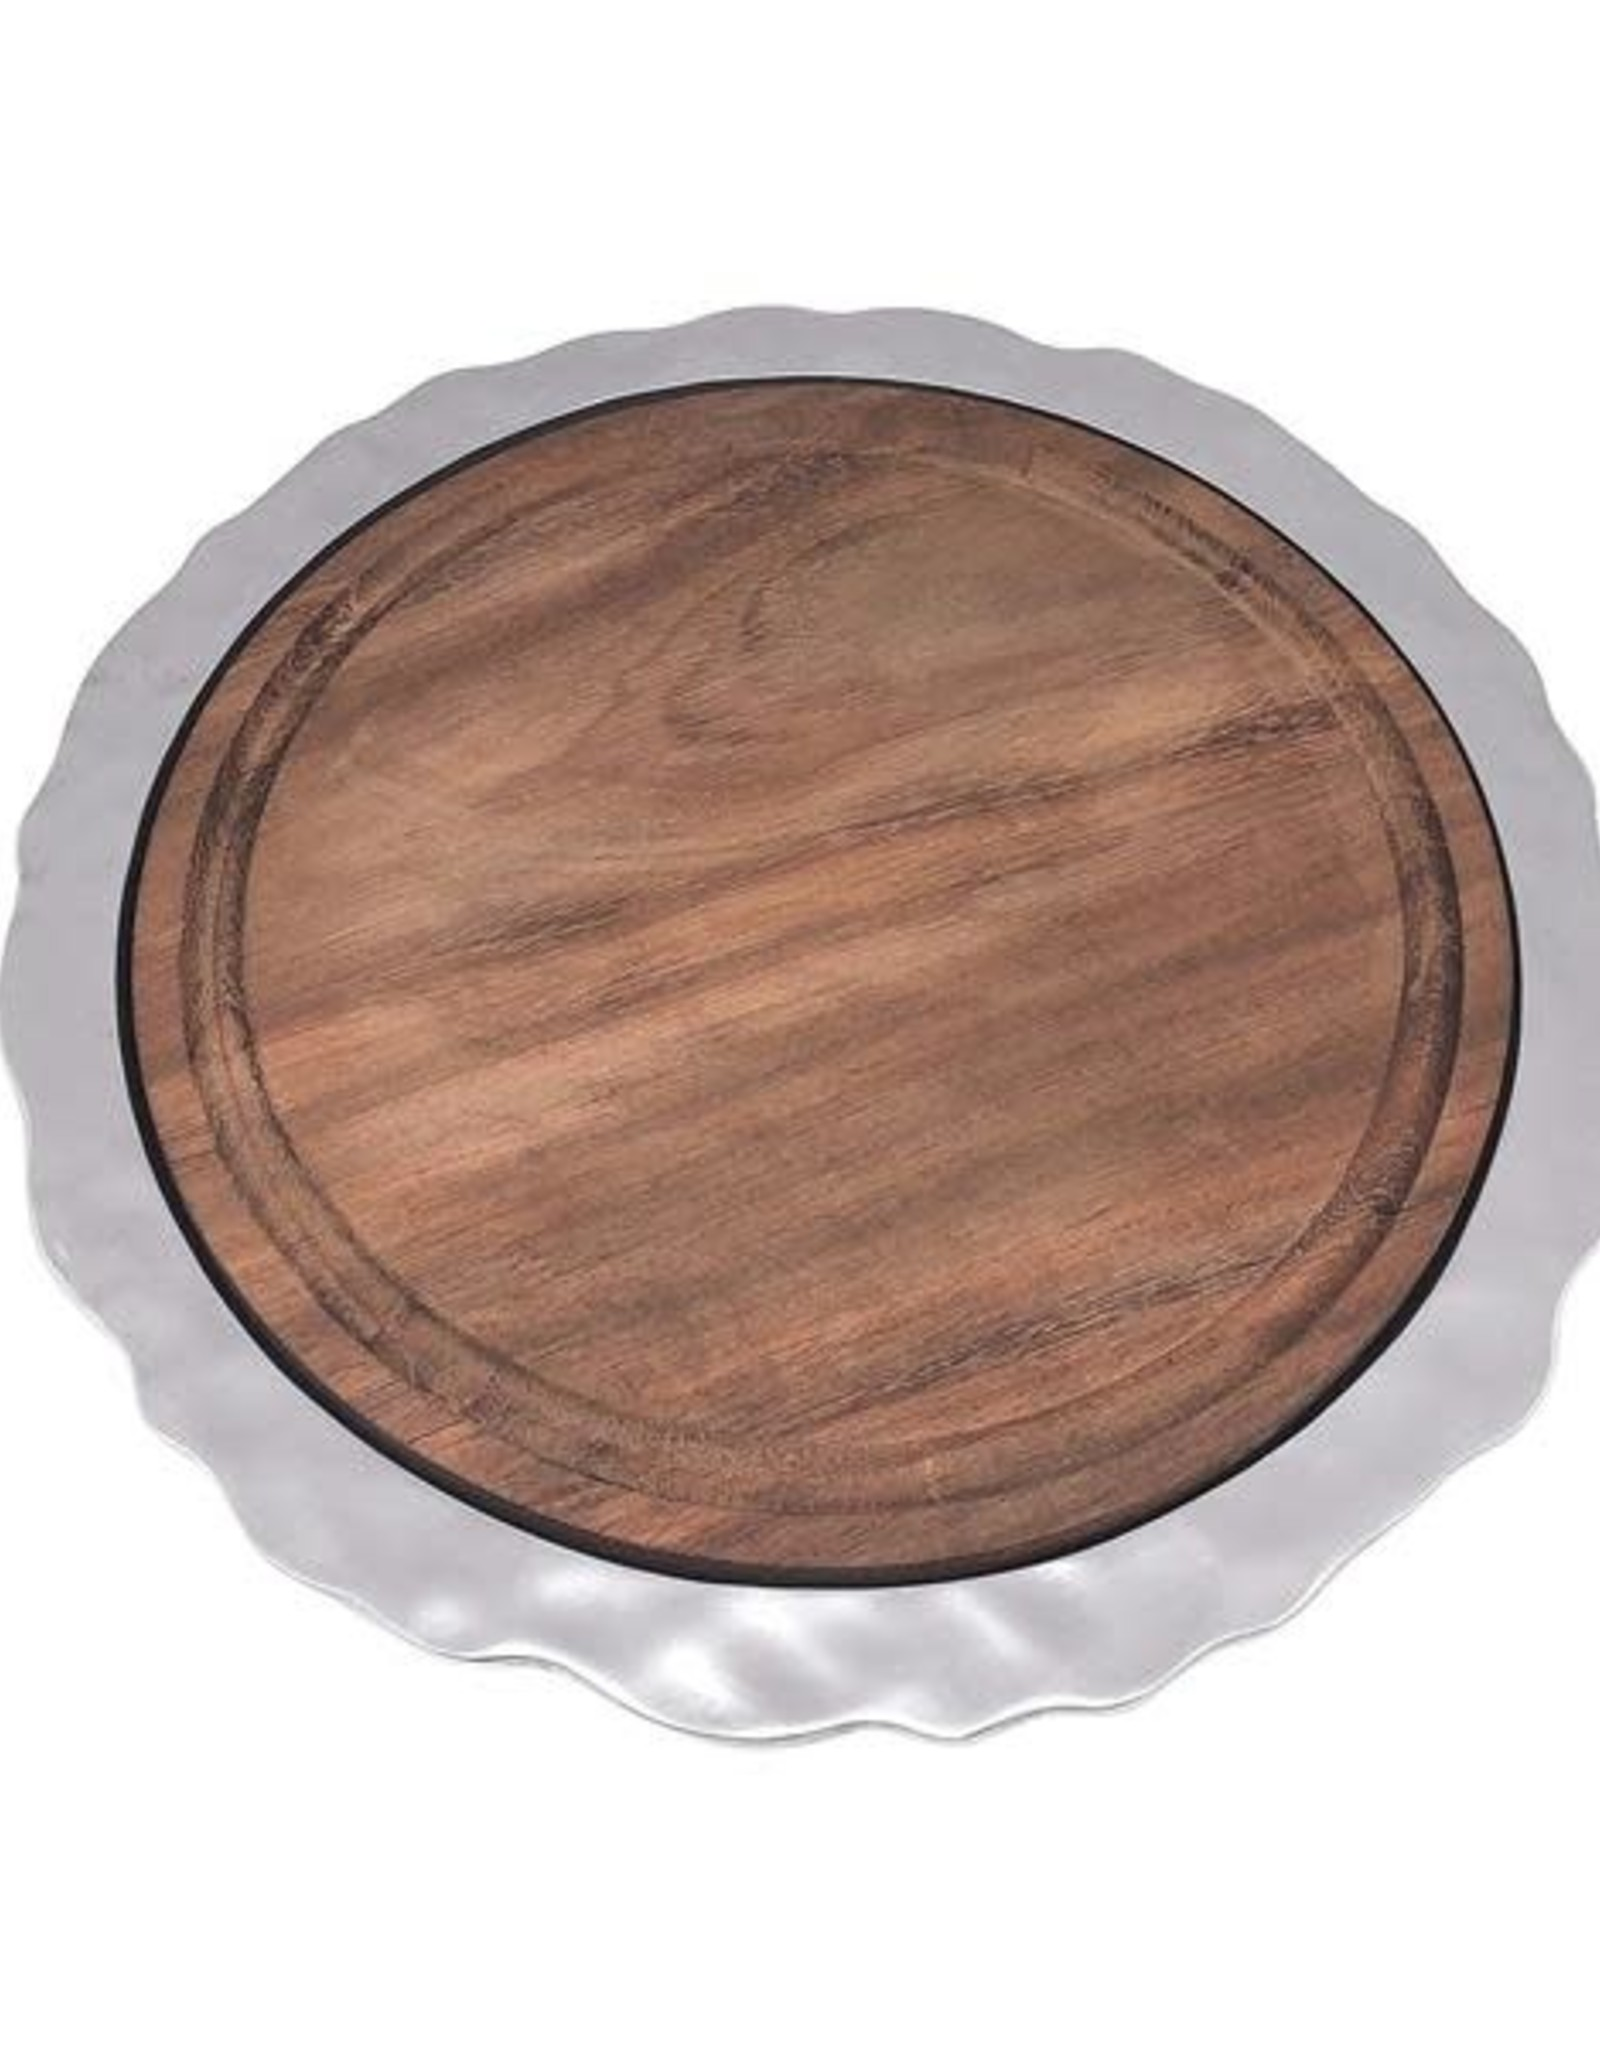 Mariposa Shimmer Round Cheese Board with Dark Wood Insert